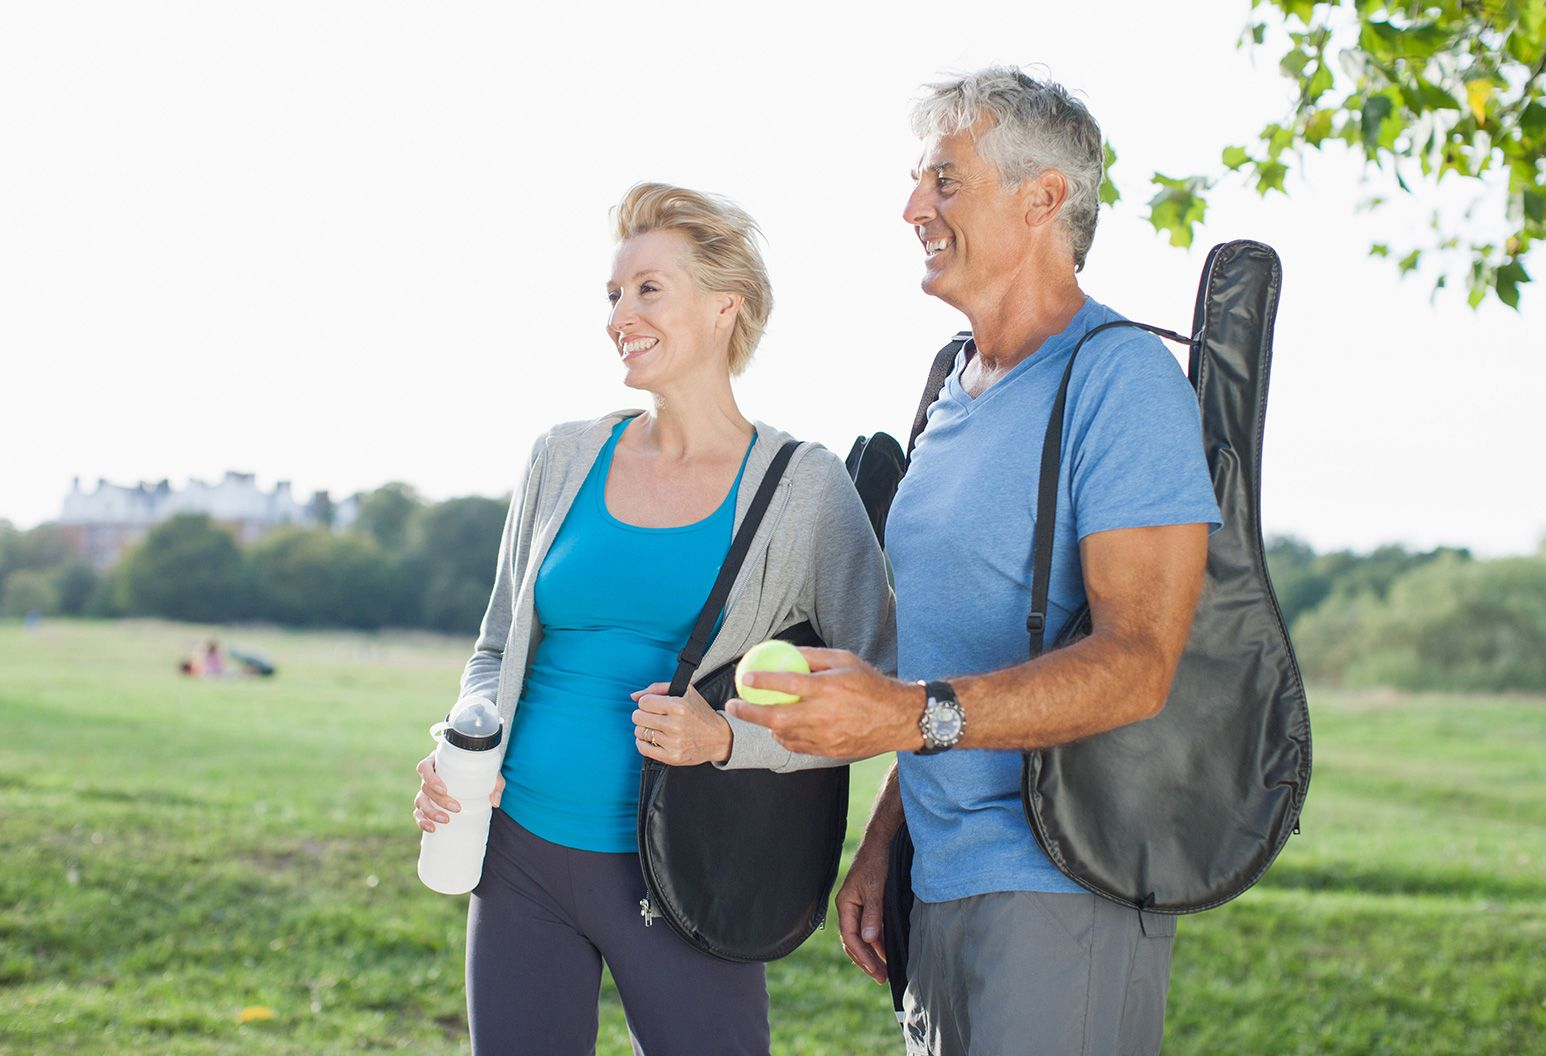 Middle-aged couple, smiling, standing in a park with tennis racquet bags on their shoulders